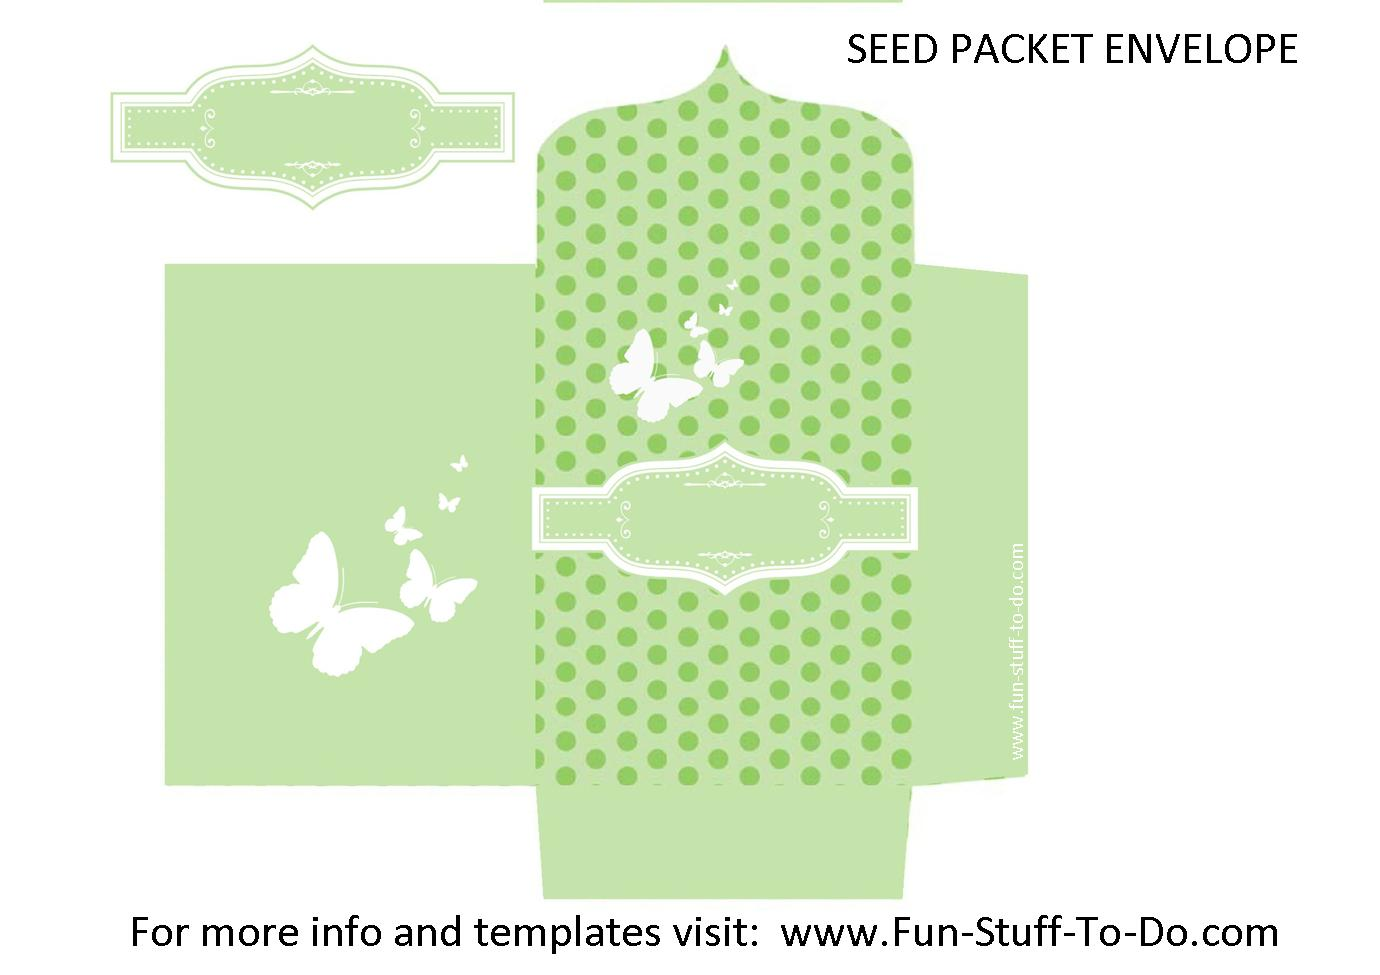 photo about Printable Seed Packets known as Seed Packet Envelope